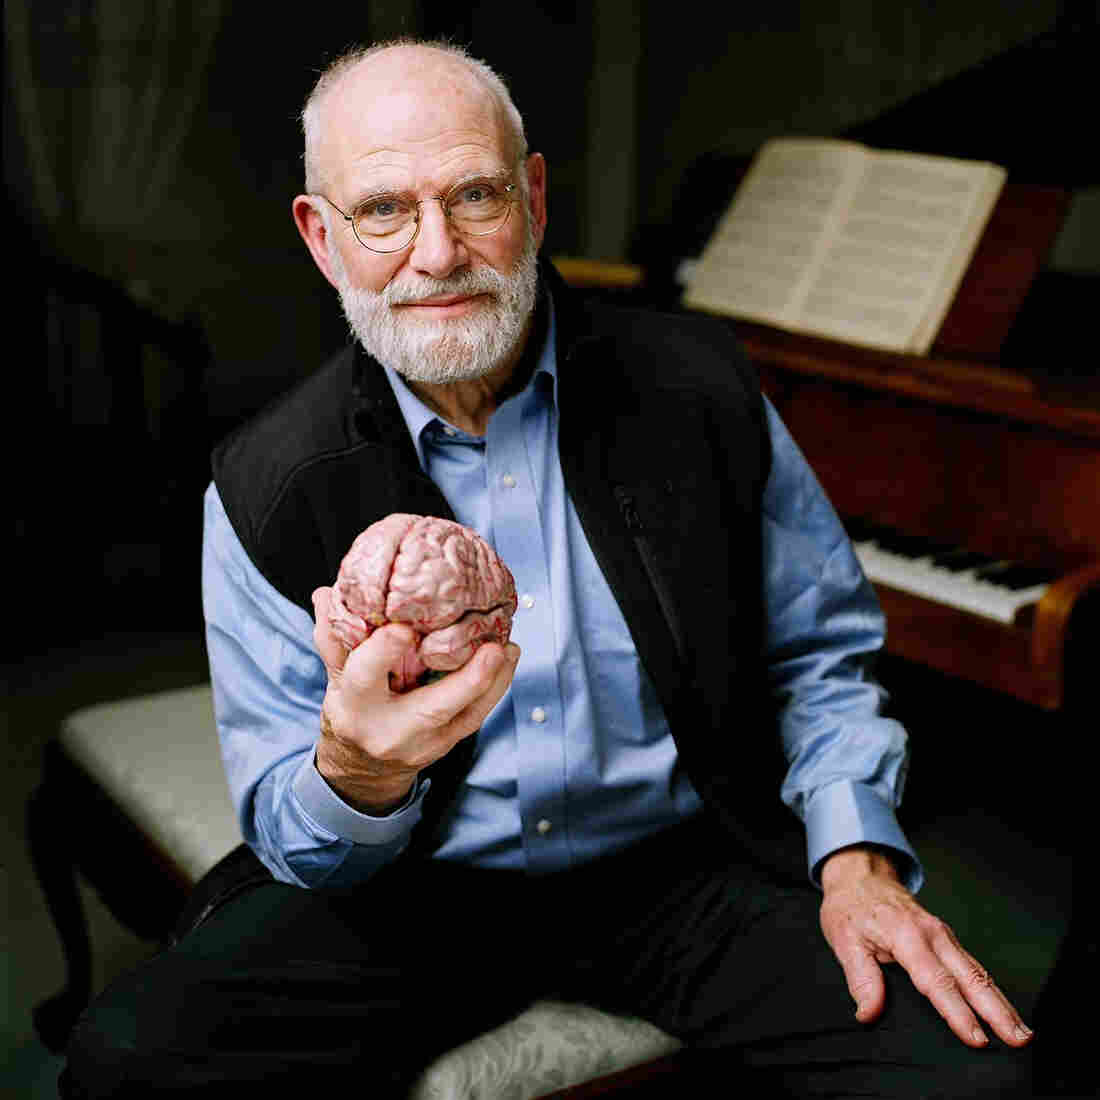 Oliver Sacks in 2007.